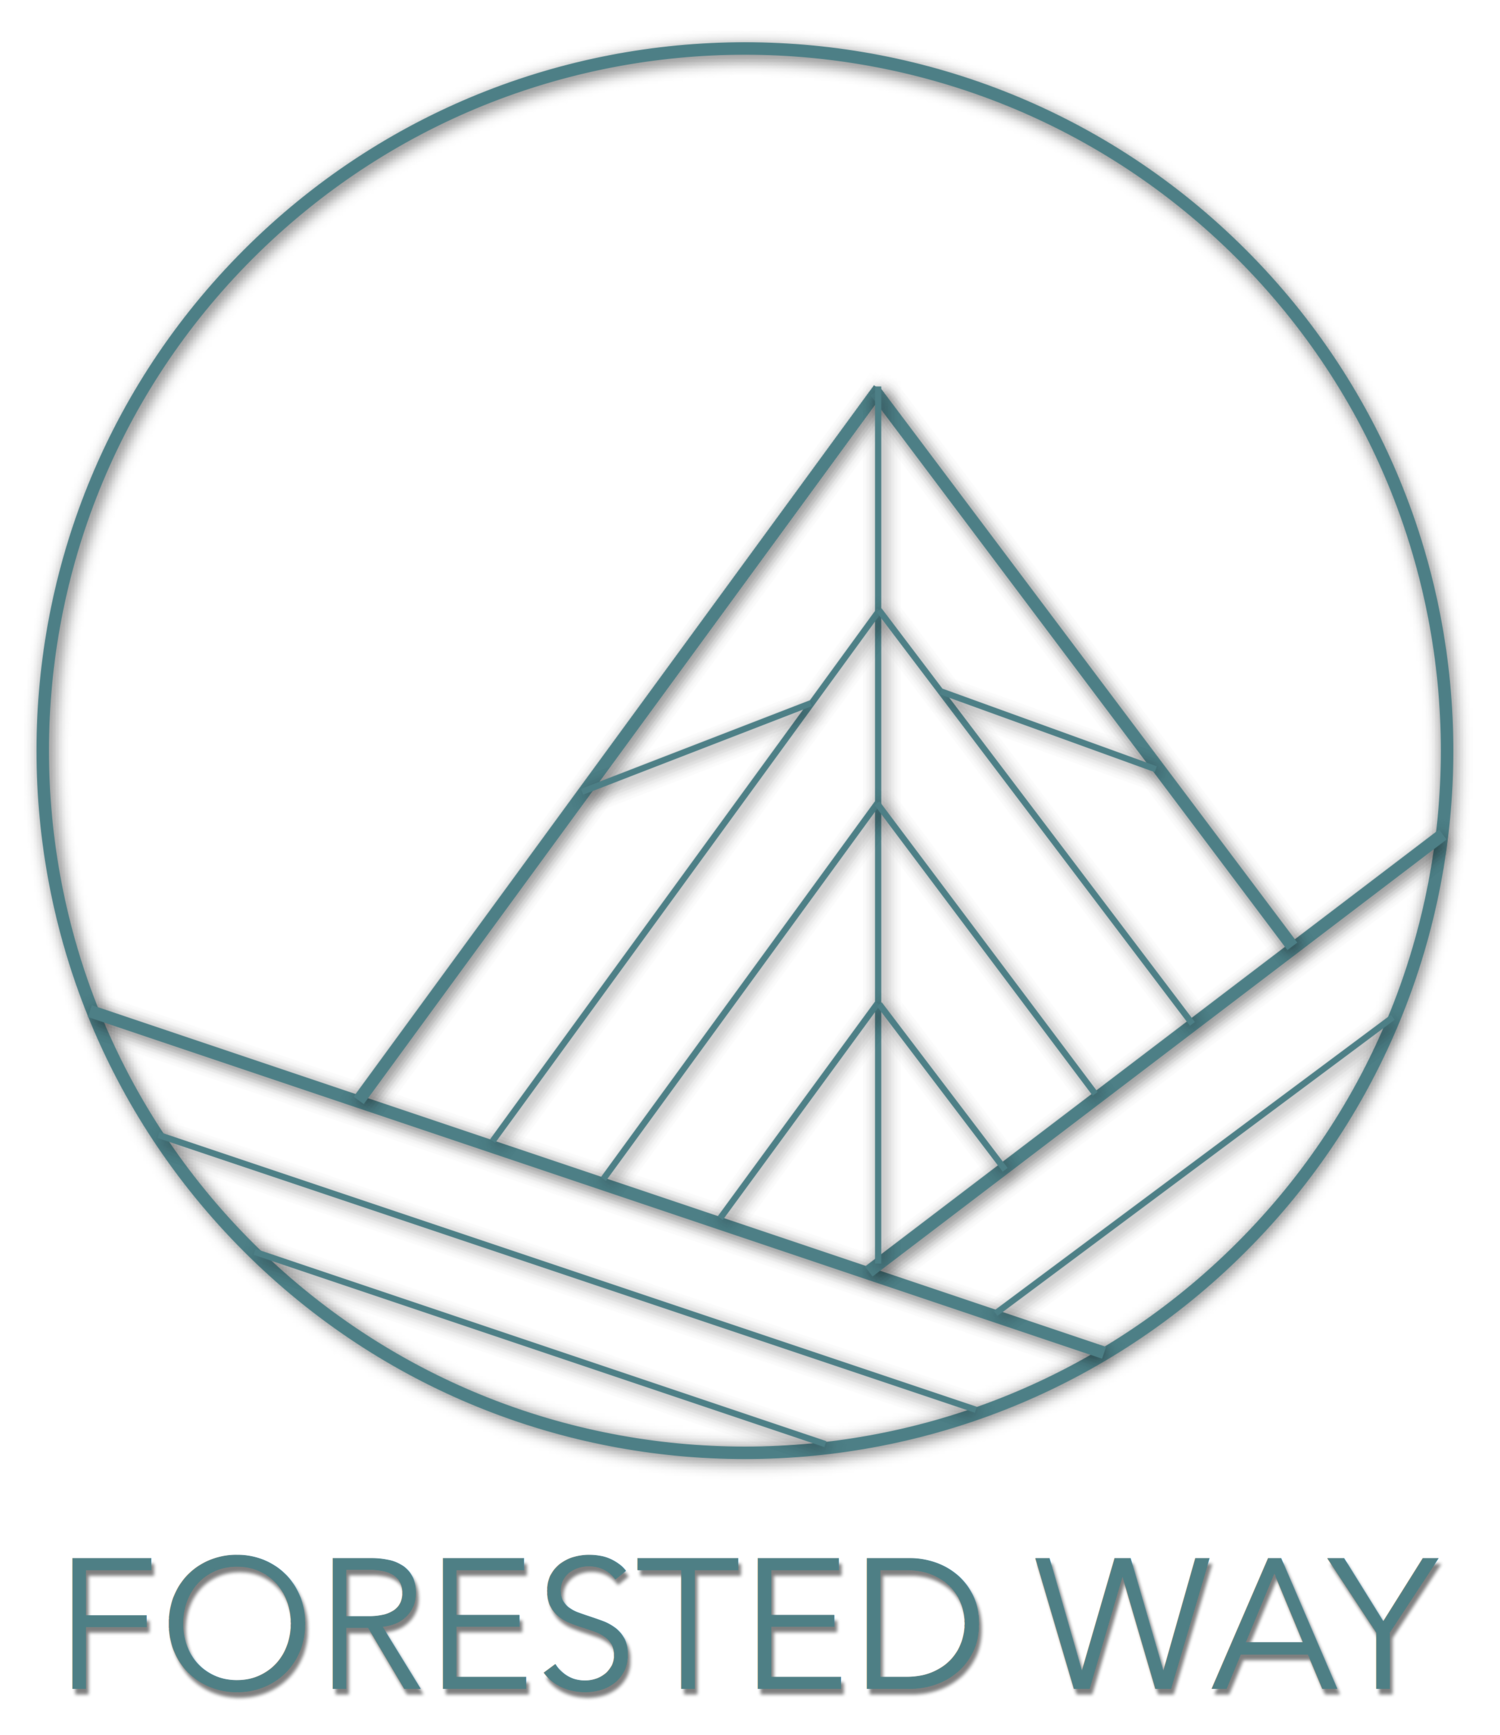 FORESTED WAY